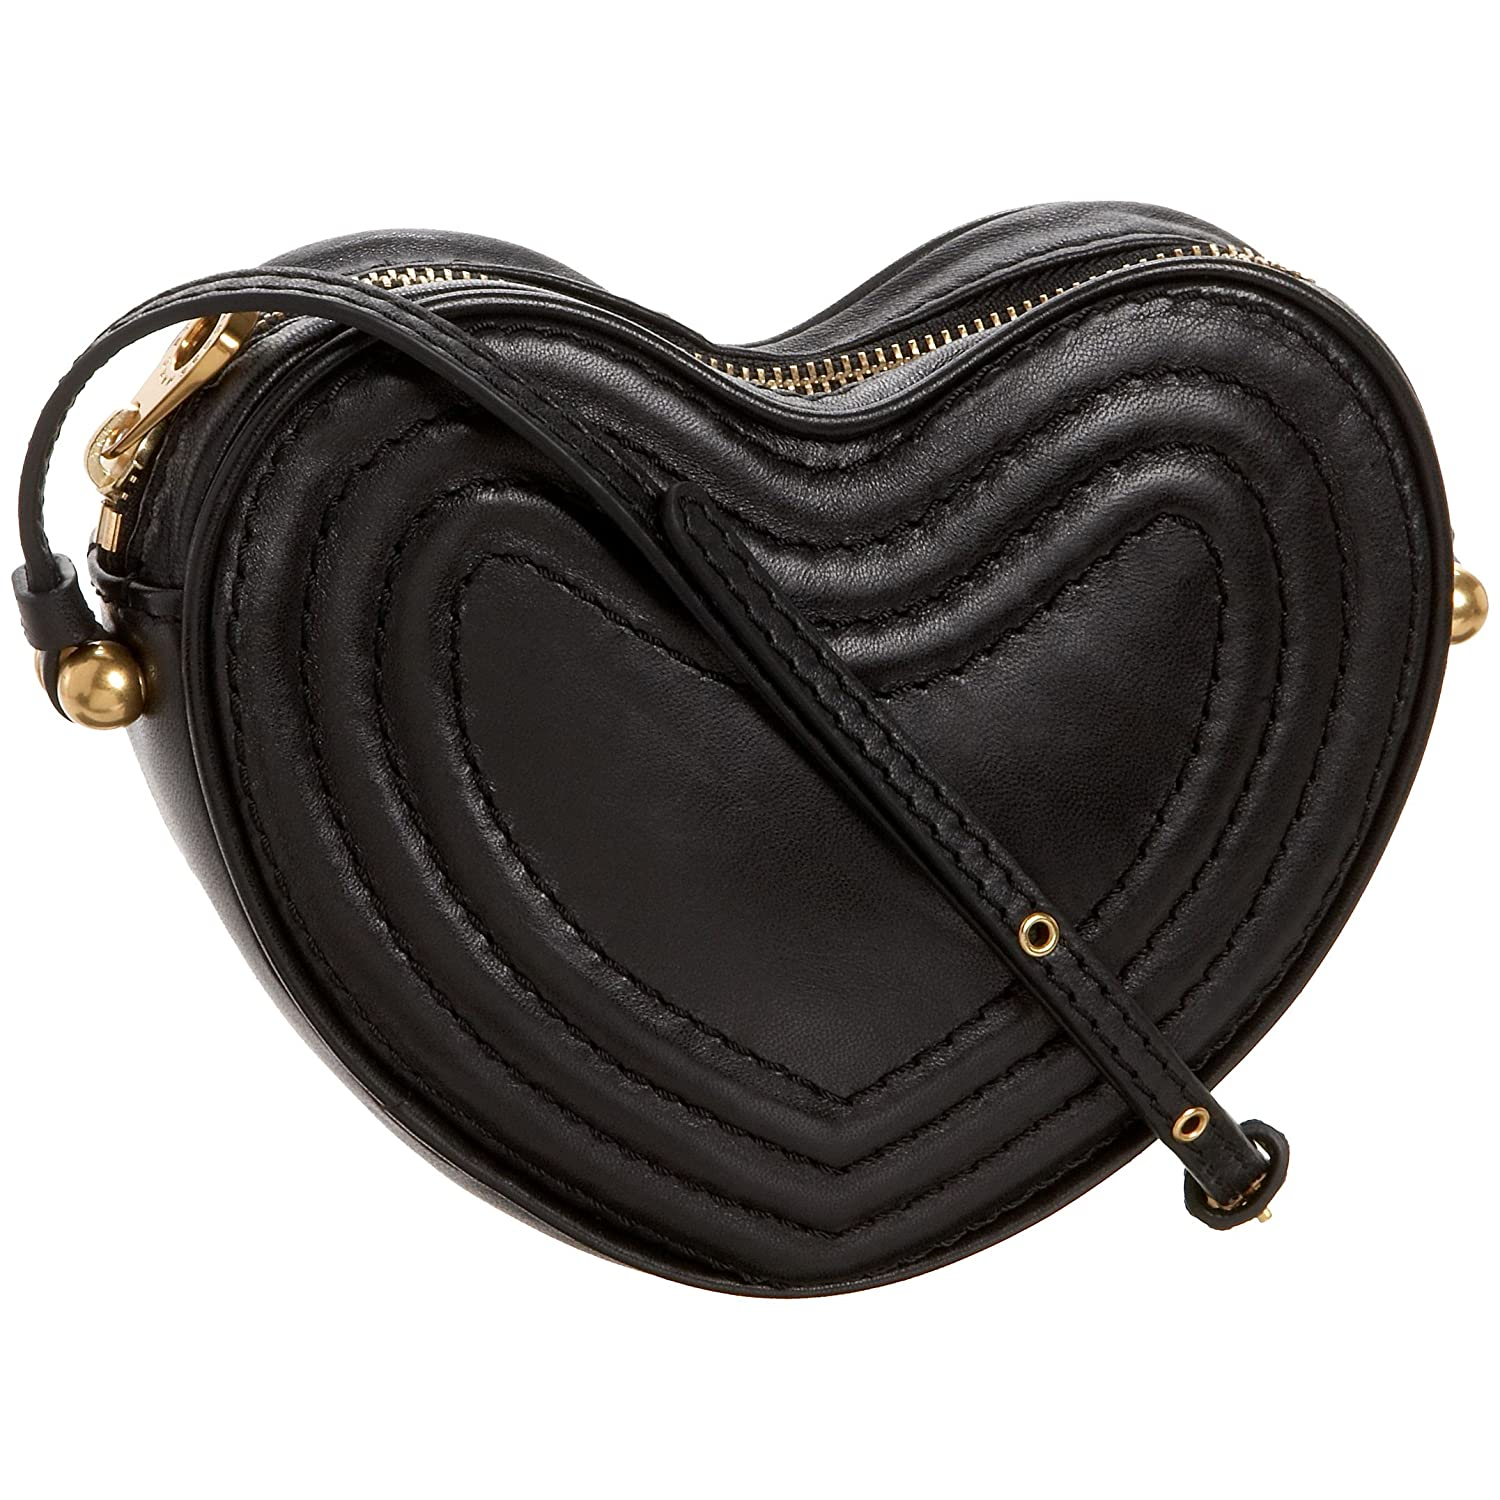 Marc by Marc Jacobs - Trapped! Heart Cross-Body from endless.com